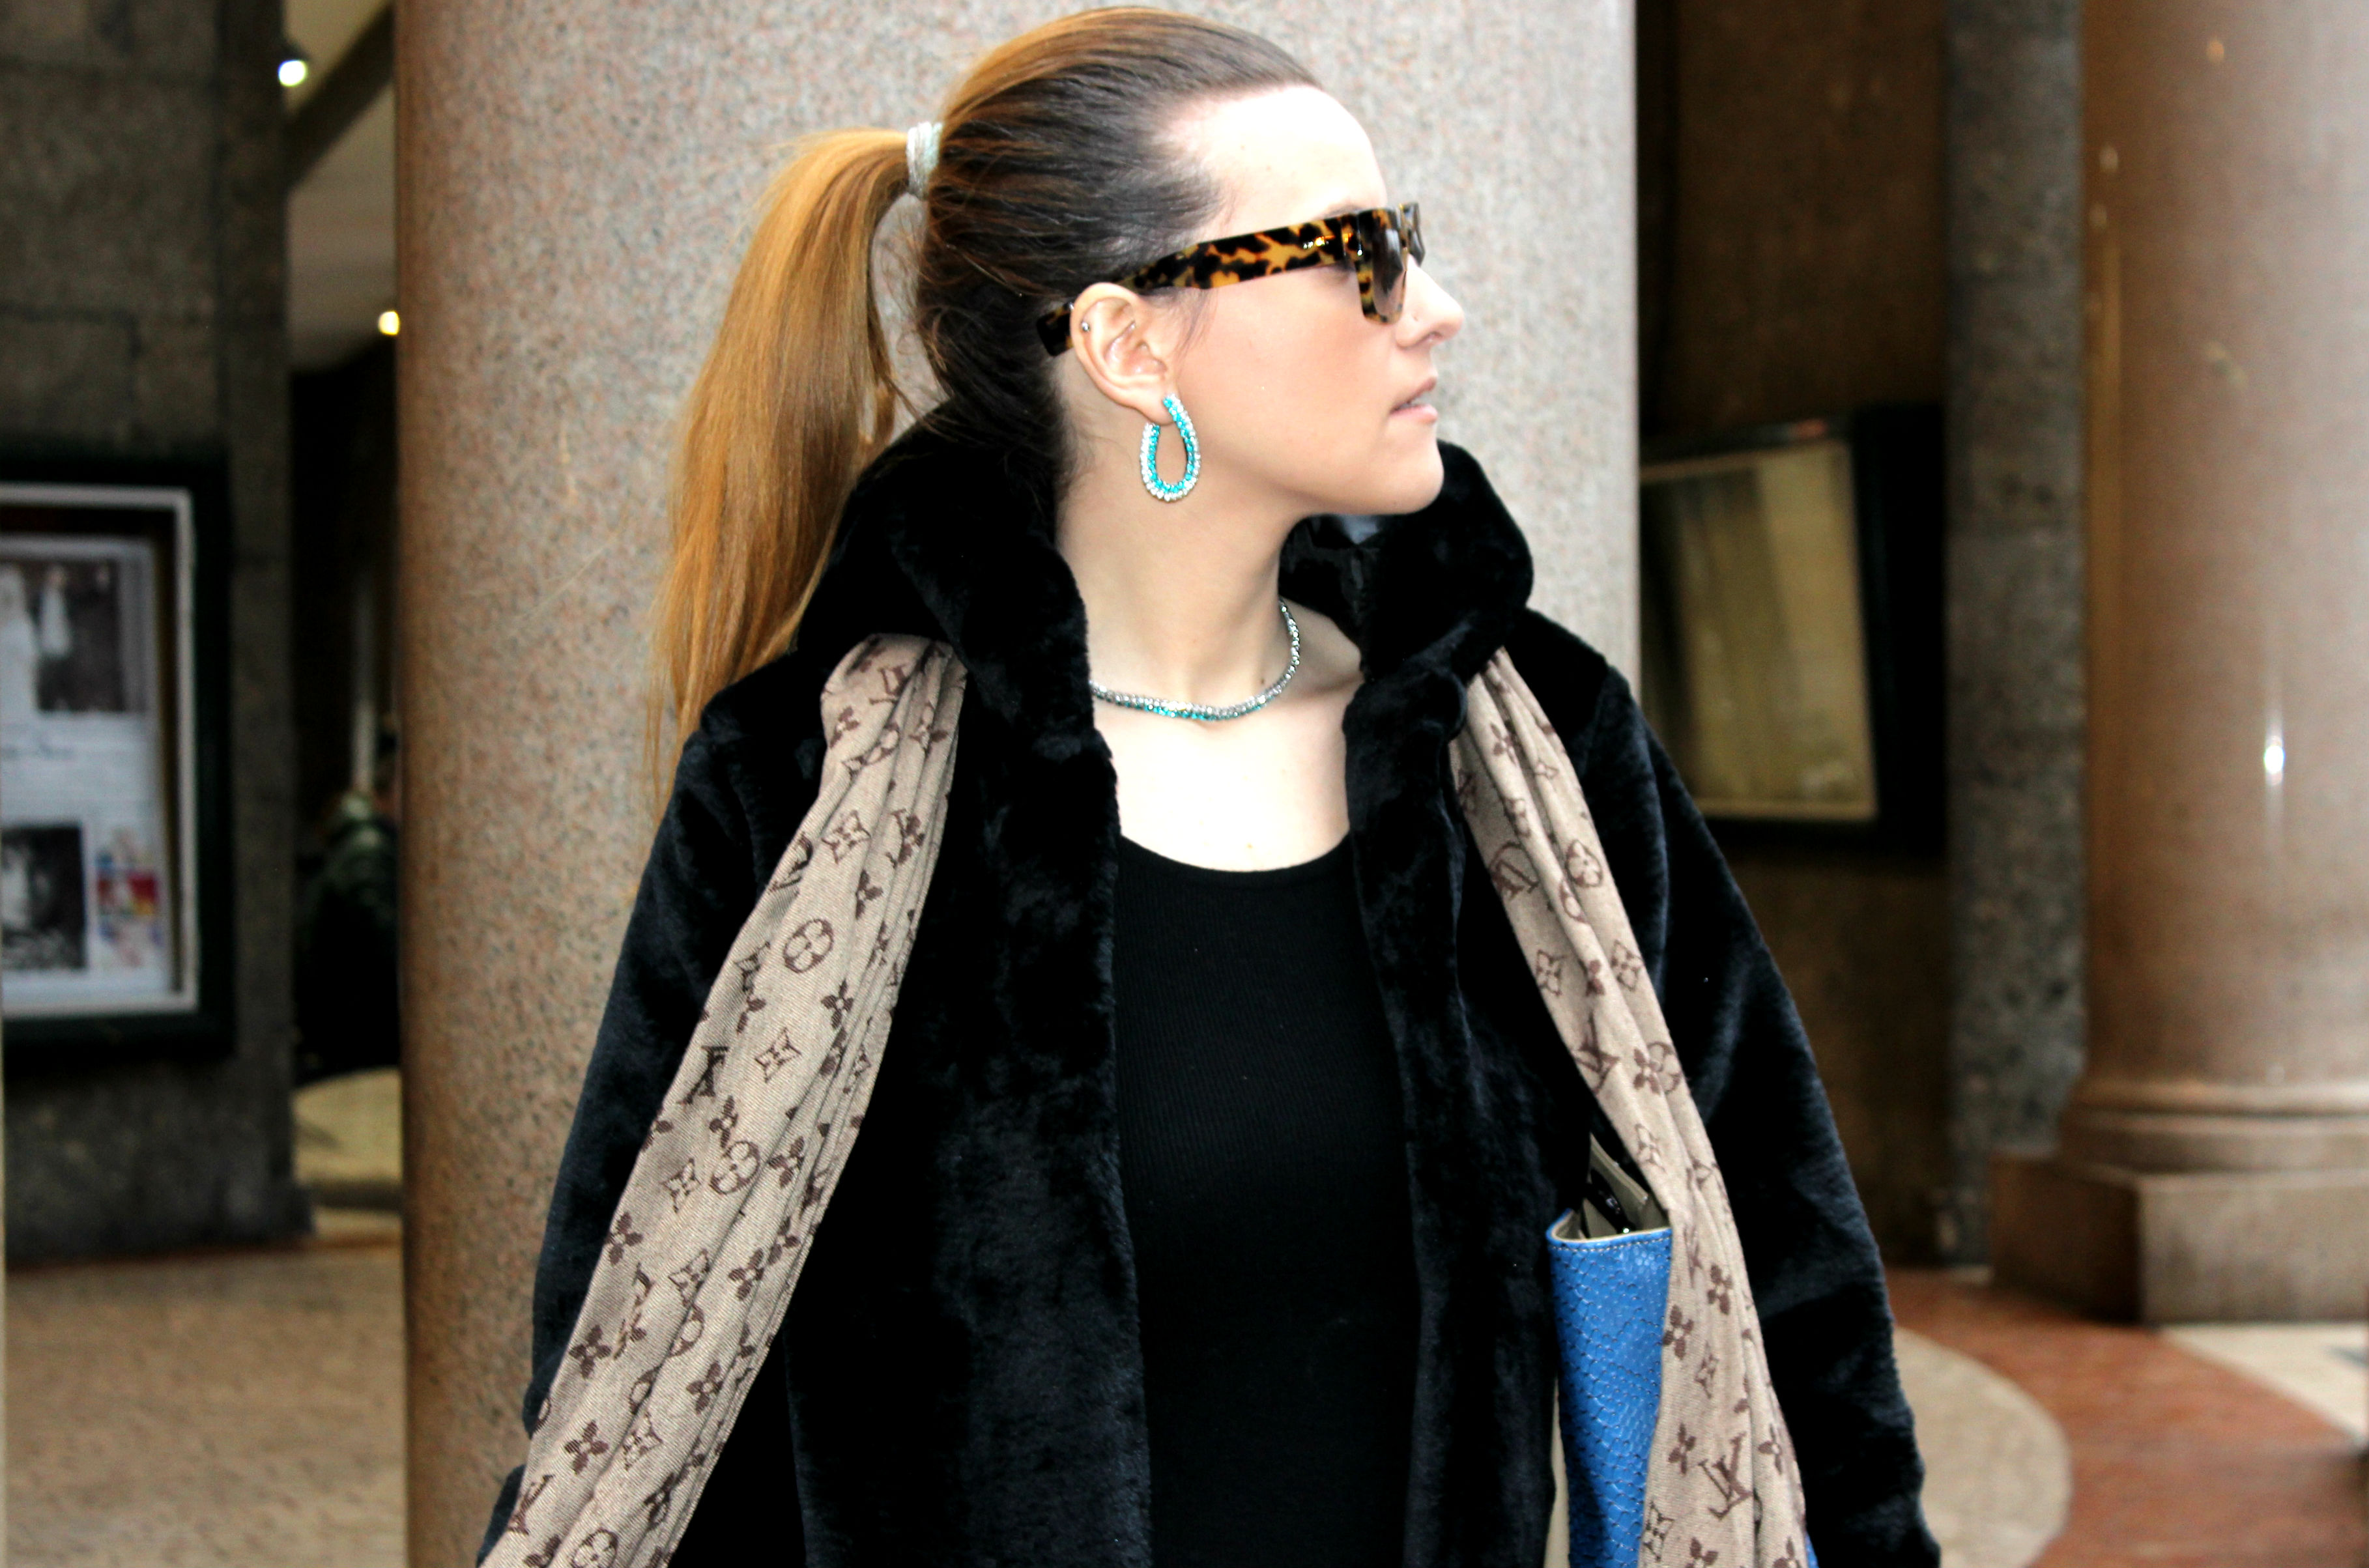 LEPANDORINE-bag-cheap-furcoat-prada-sunglasses3